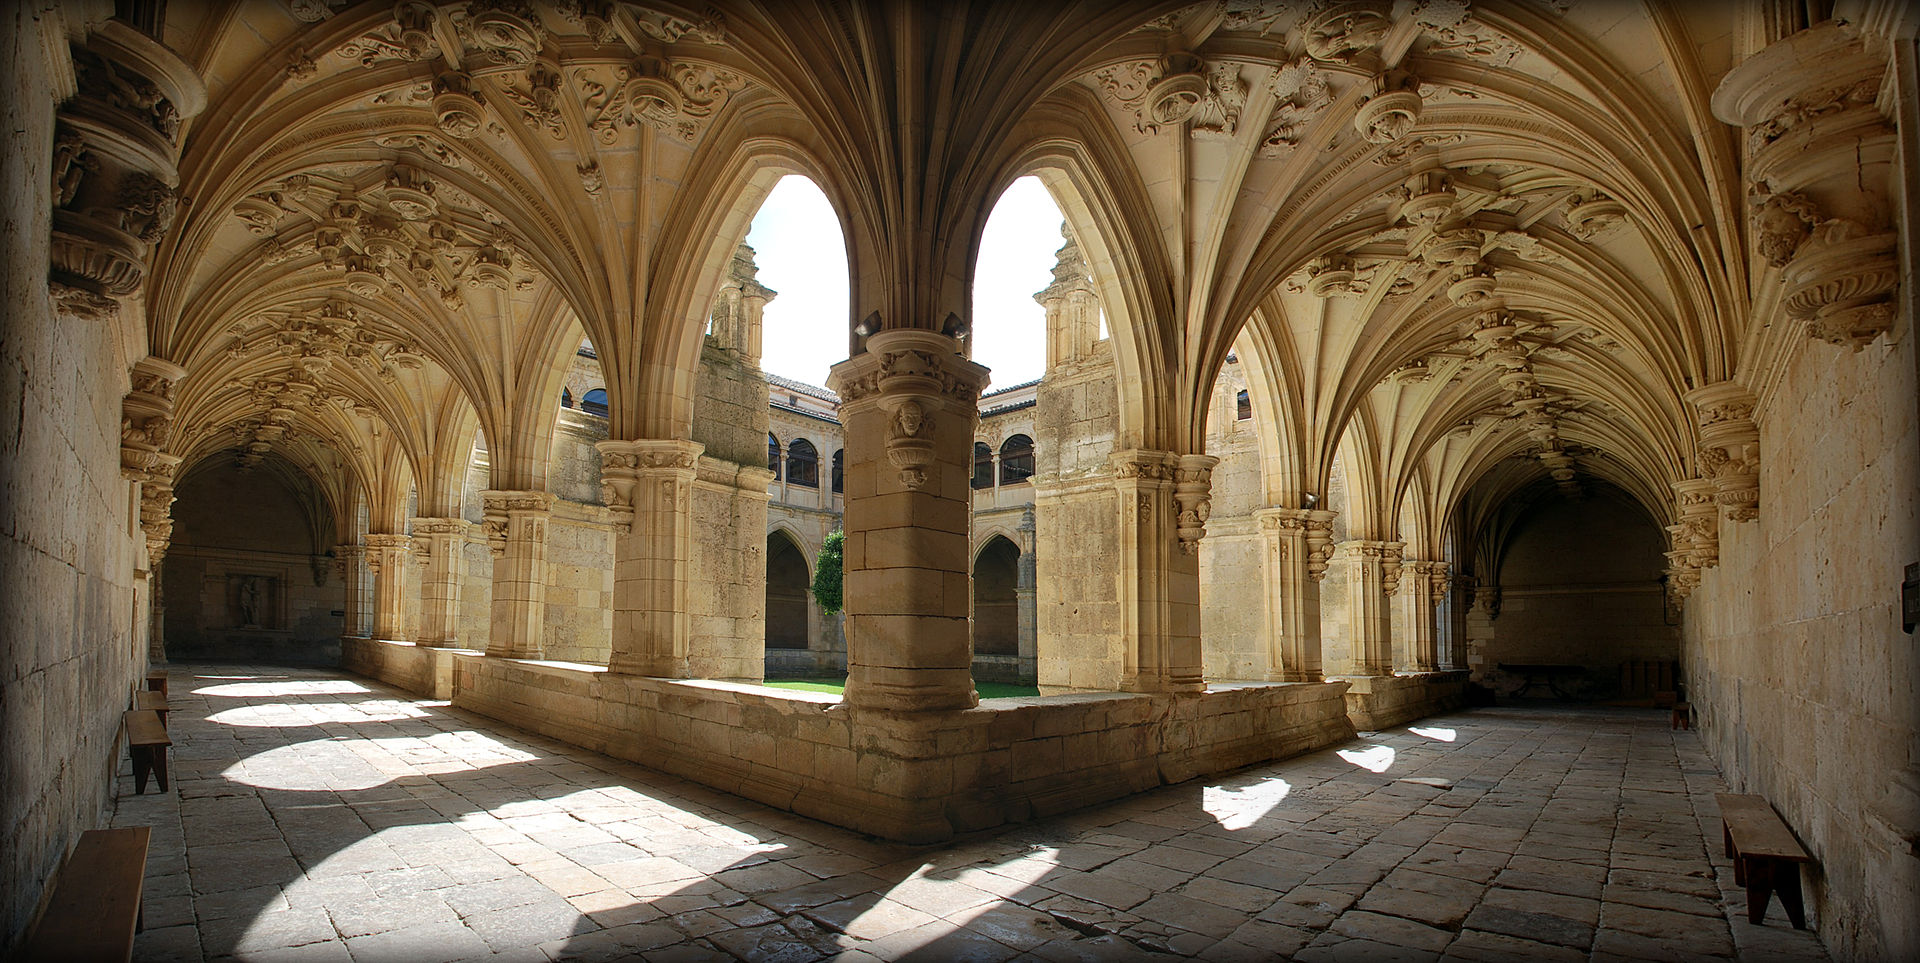 Cloister of the San Zoilo Monastery